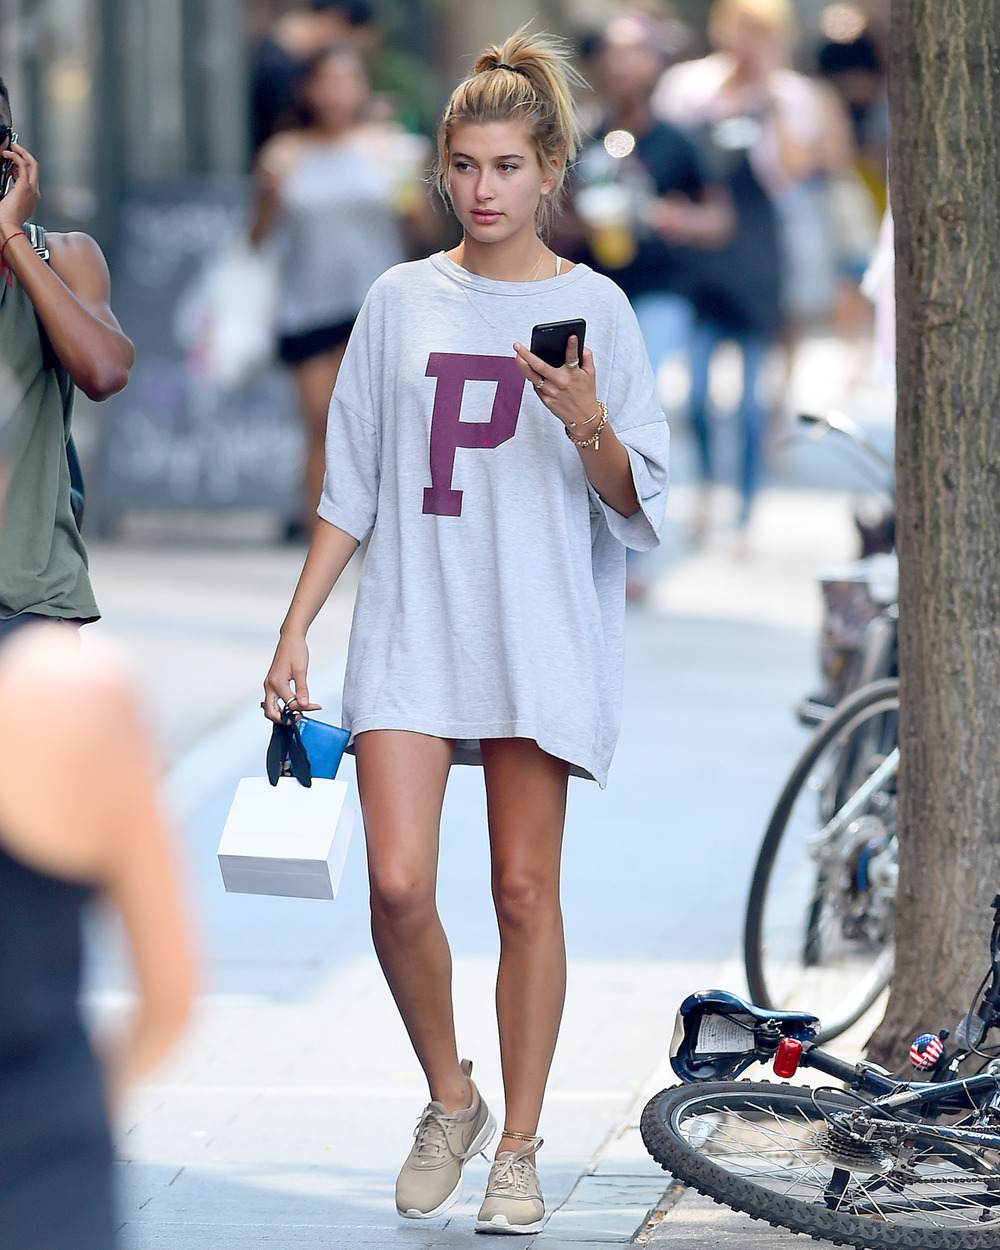 teenvogue: No pants?  No problem.  Here's how to style the shirt dress >>